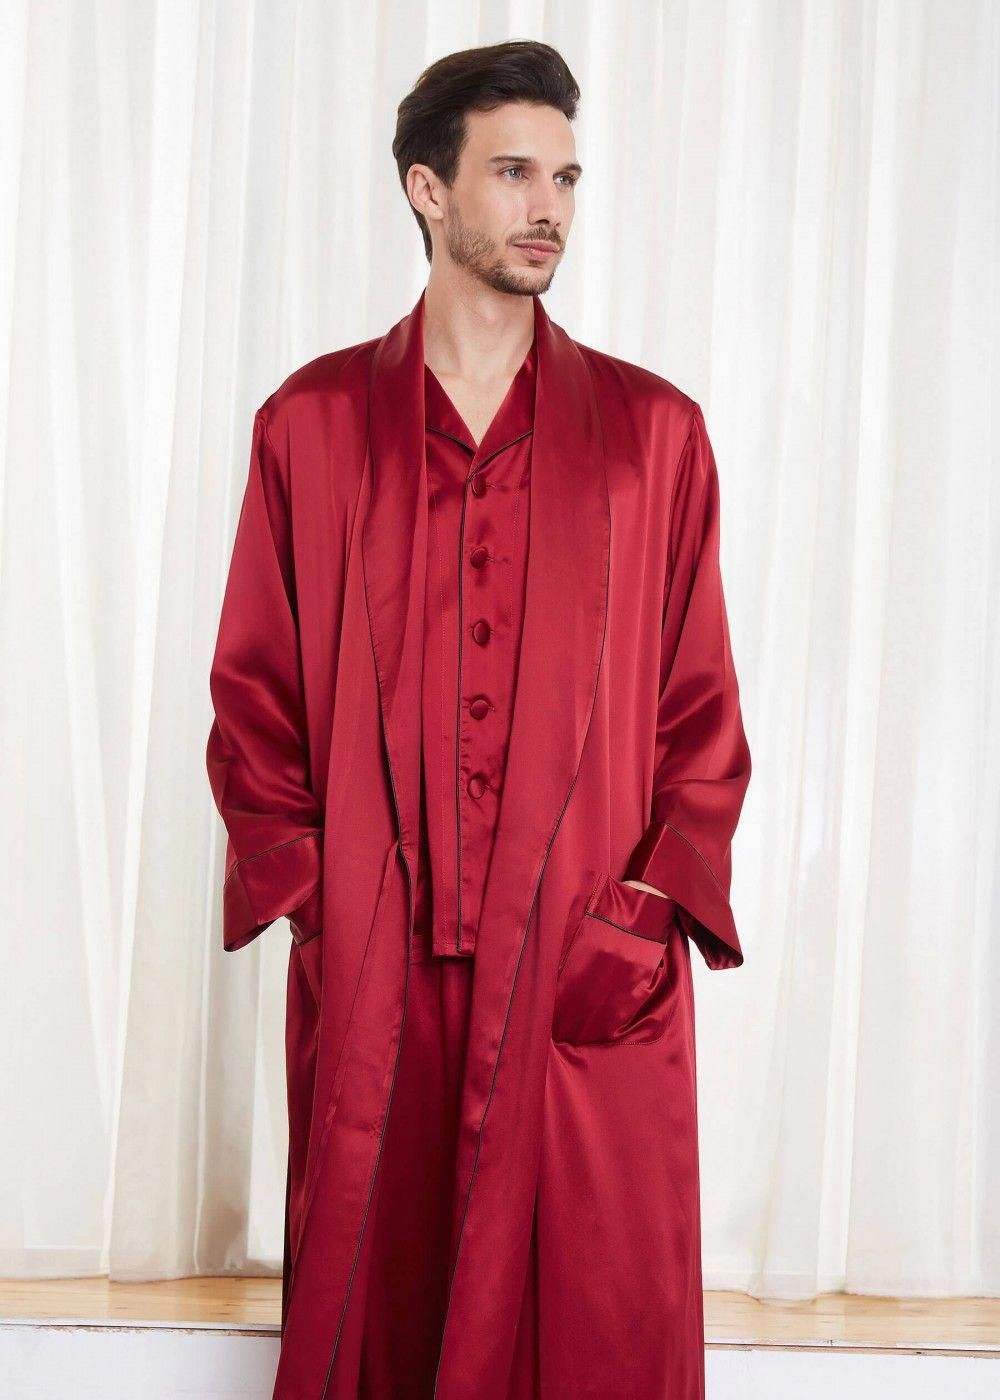 68b9bd9b6 22 Momme Contra Full Length Silk pajamas & robe Set for Men #silklingerie